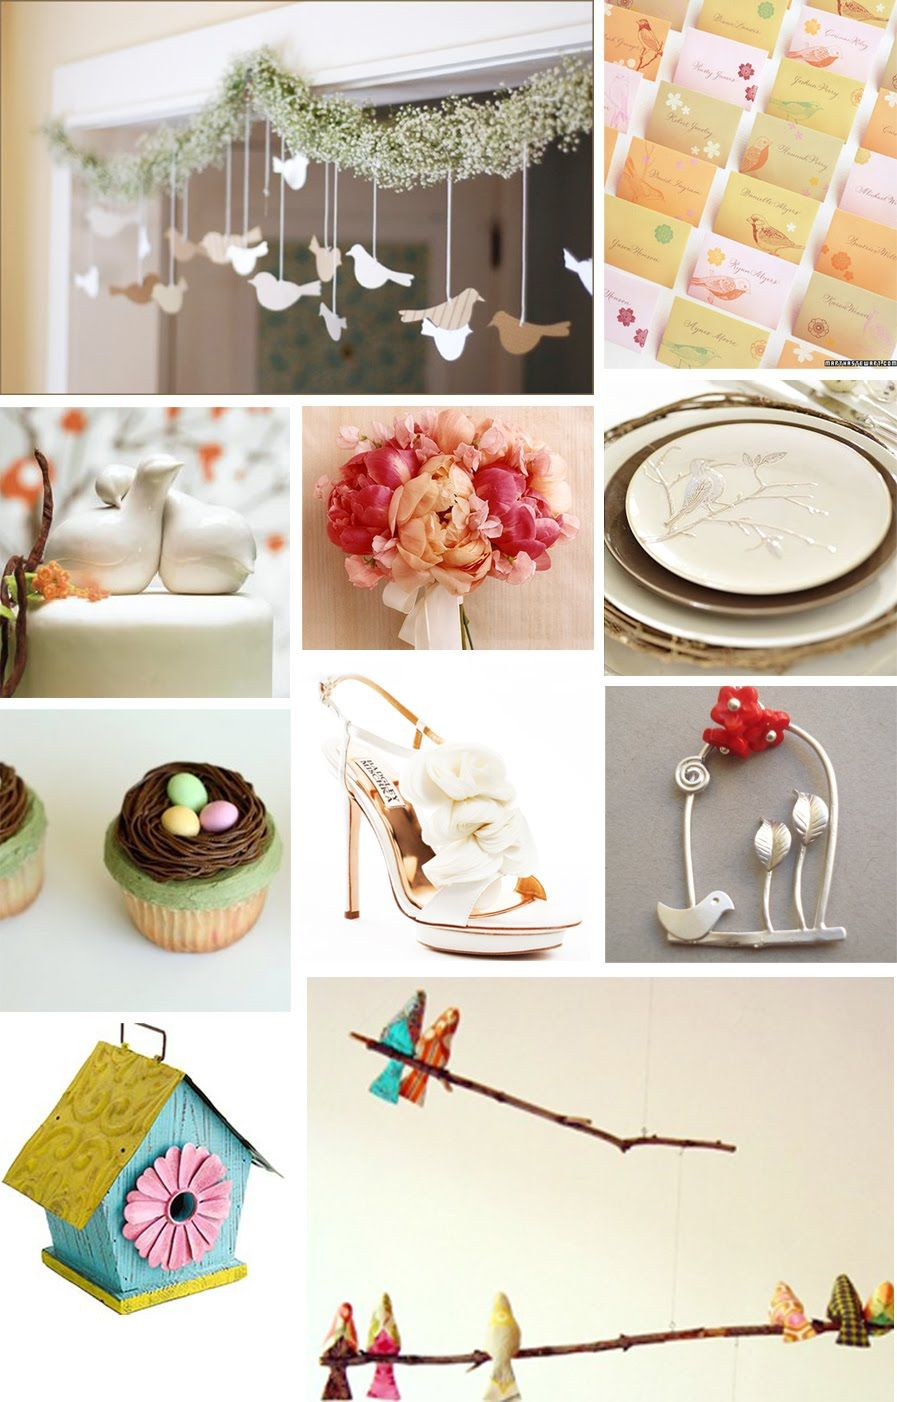 The Artful Bride Wedding Blog: Love Bird Themed Wedding Inspiration ...